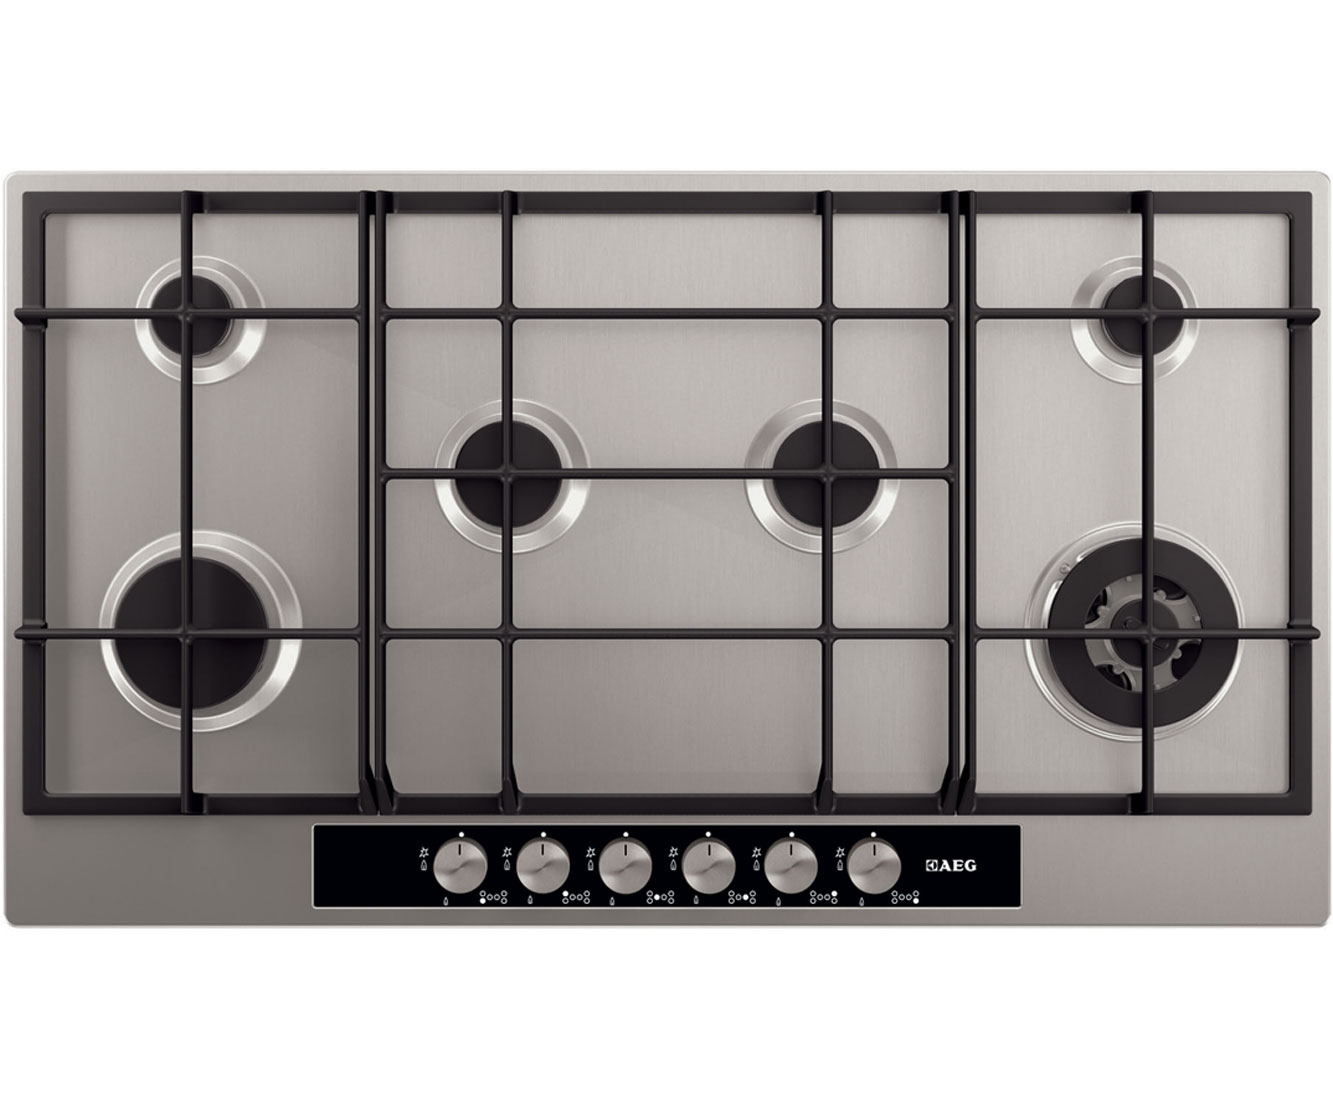 AEG Competence HG956440SM Integrated Gas Hob in Stainless Steel